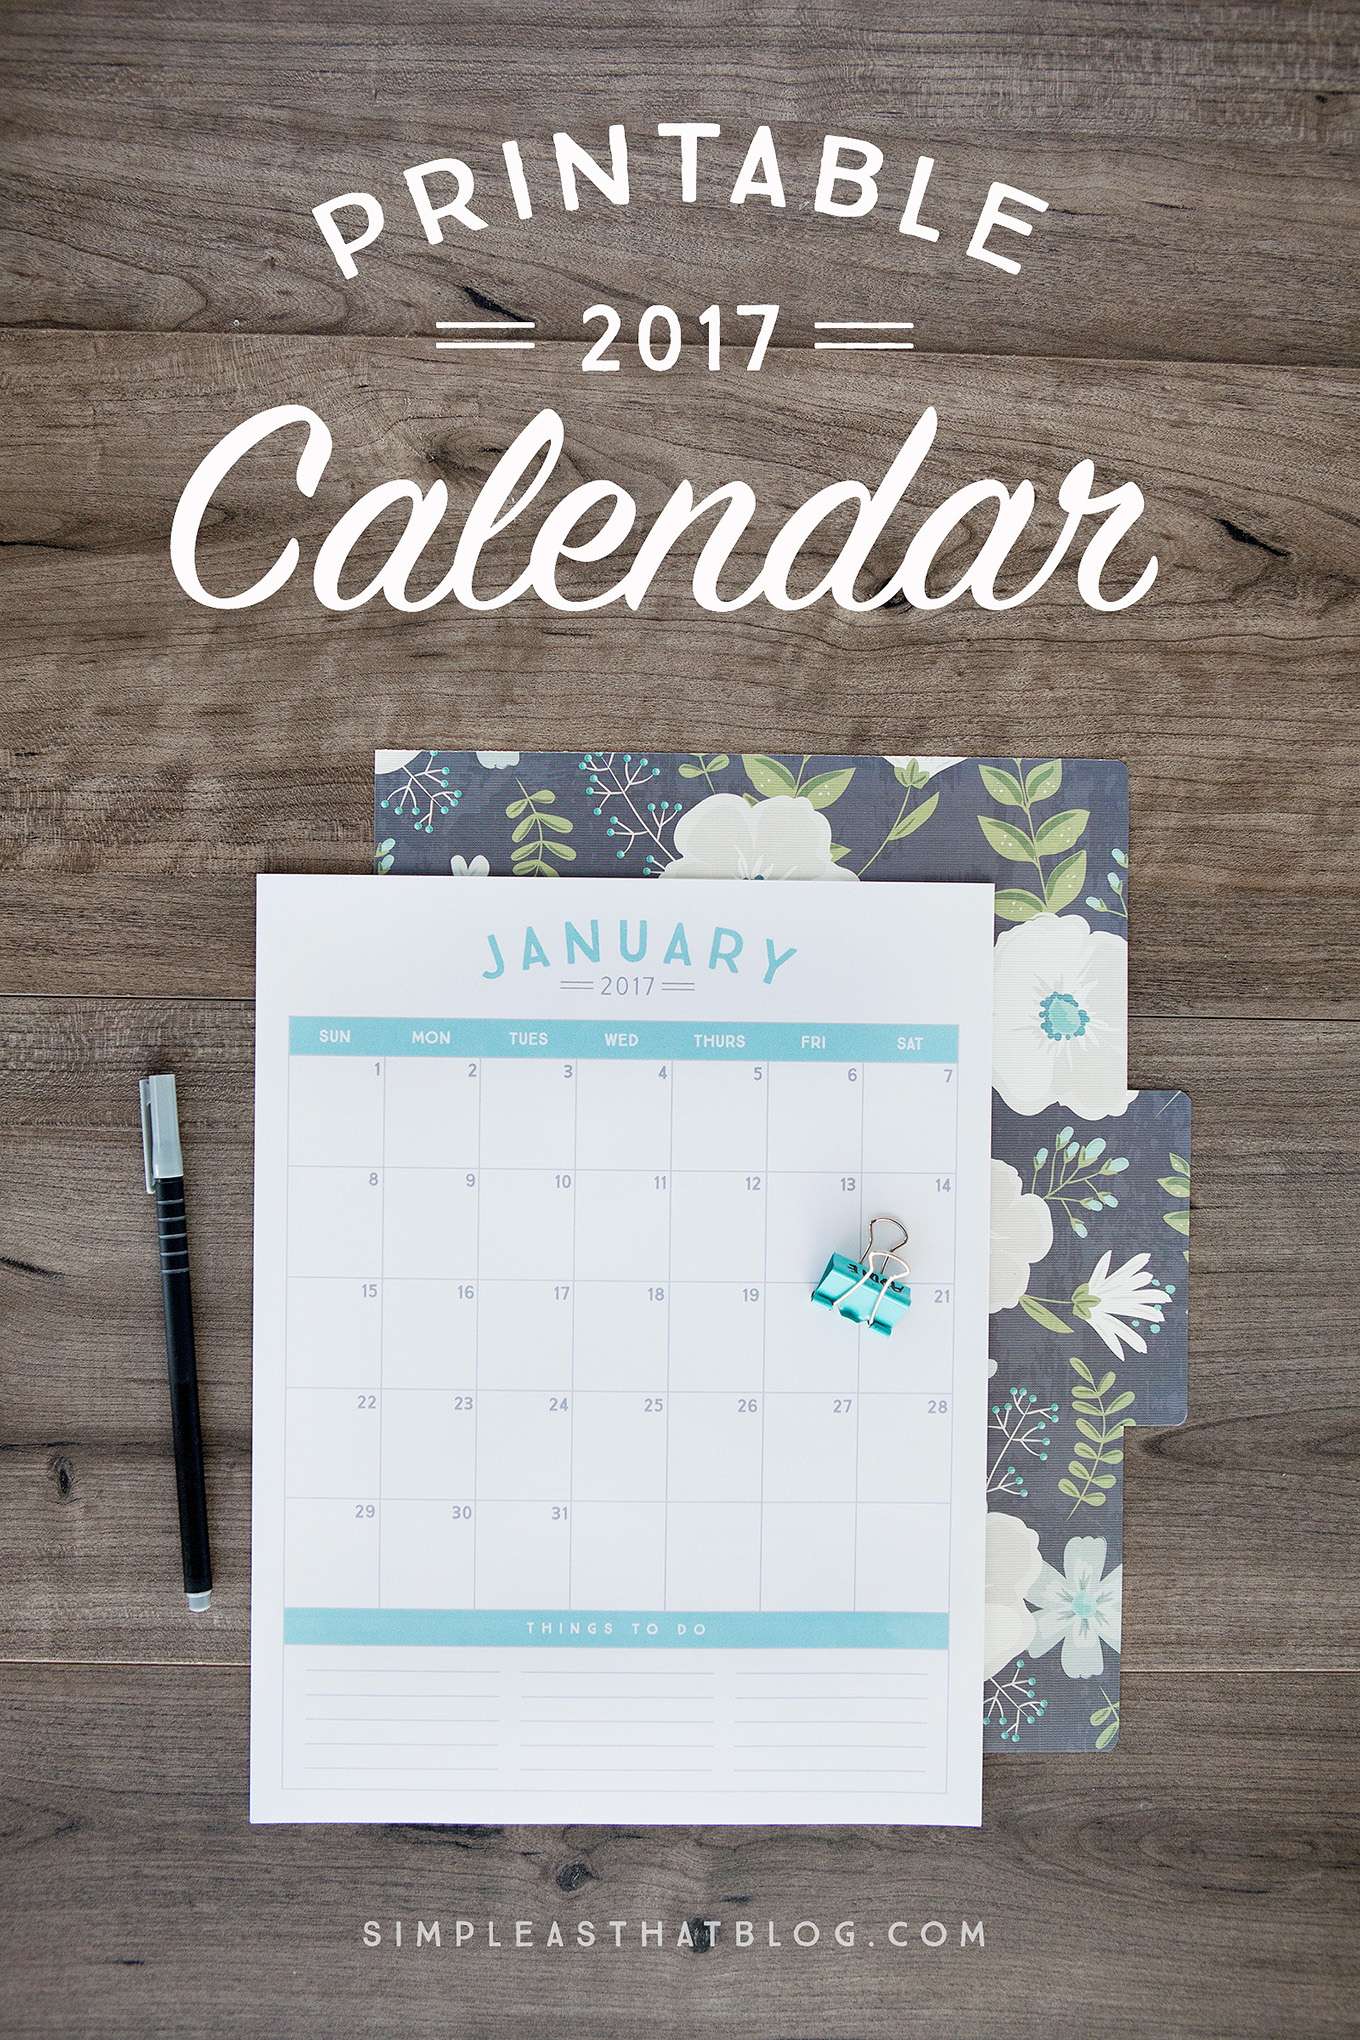 Getting organized in the new year never looked so pretty. Download your 2017 calendar here!